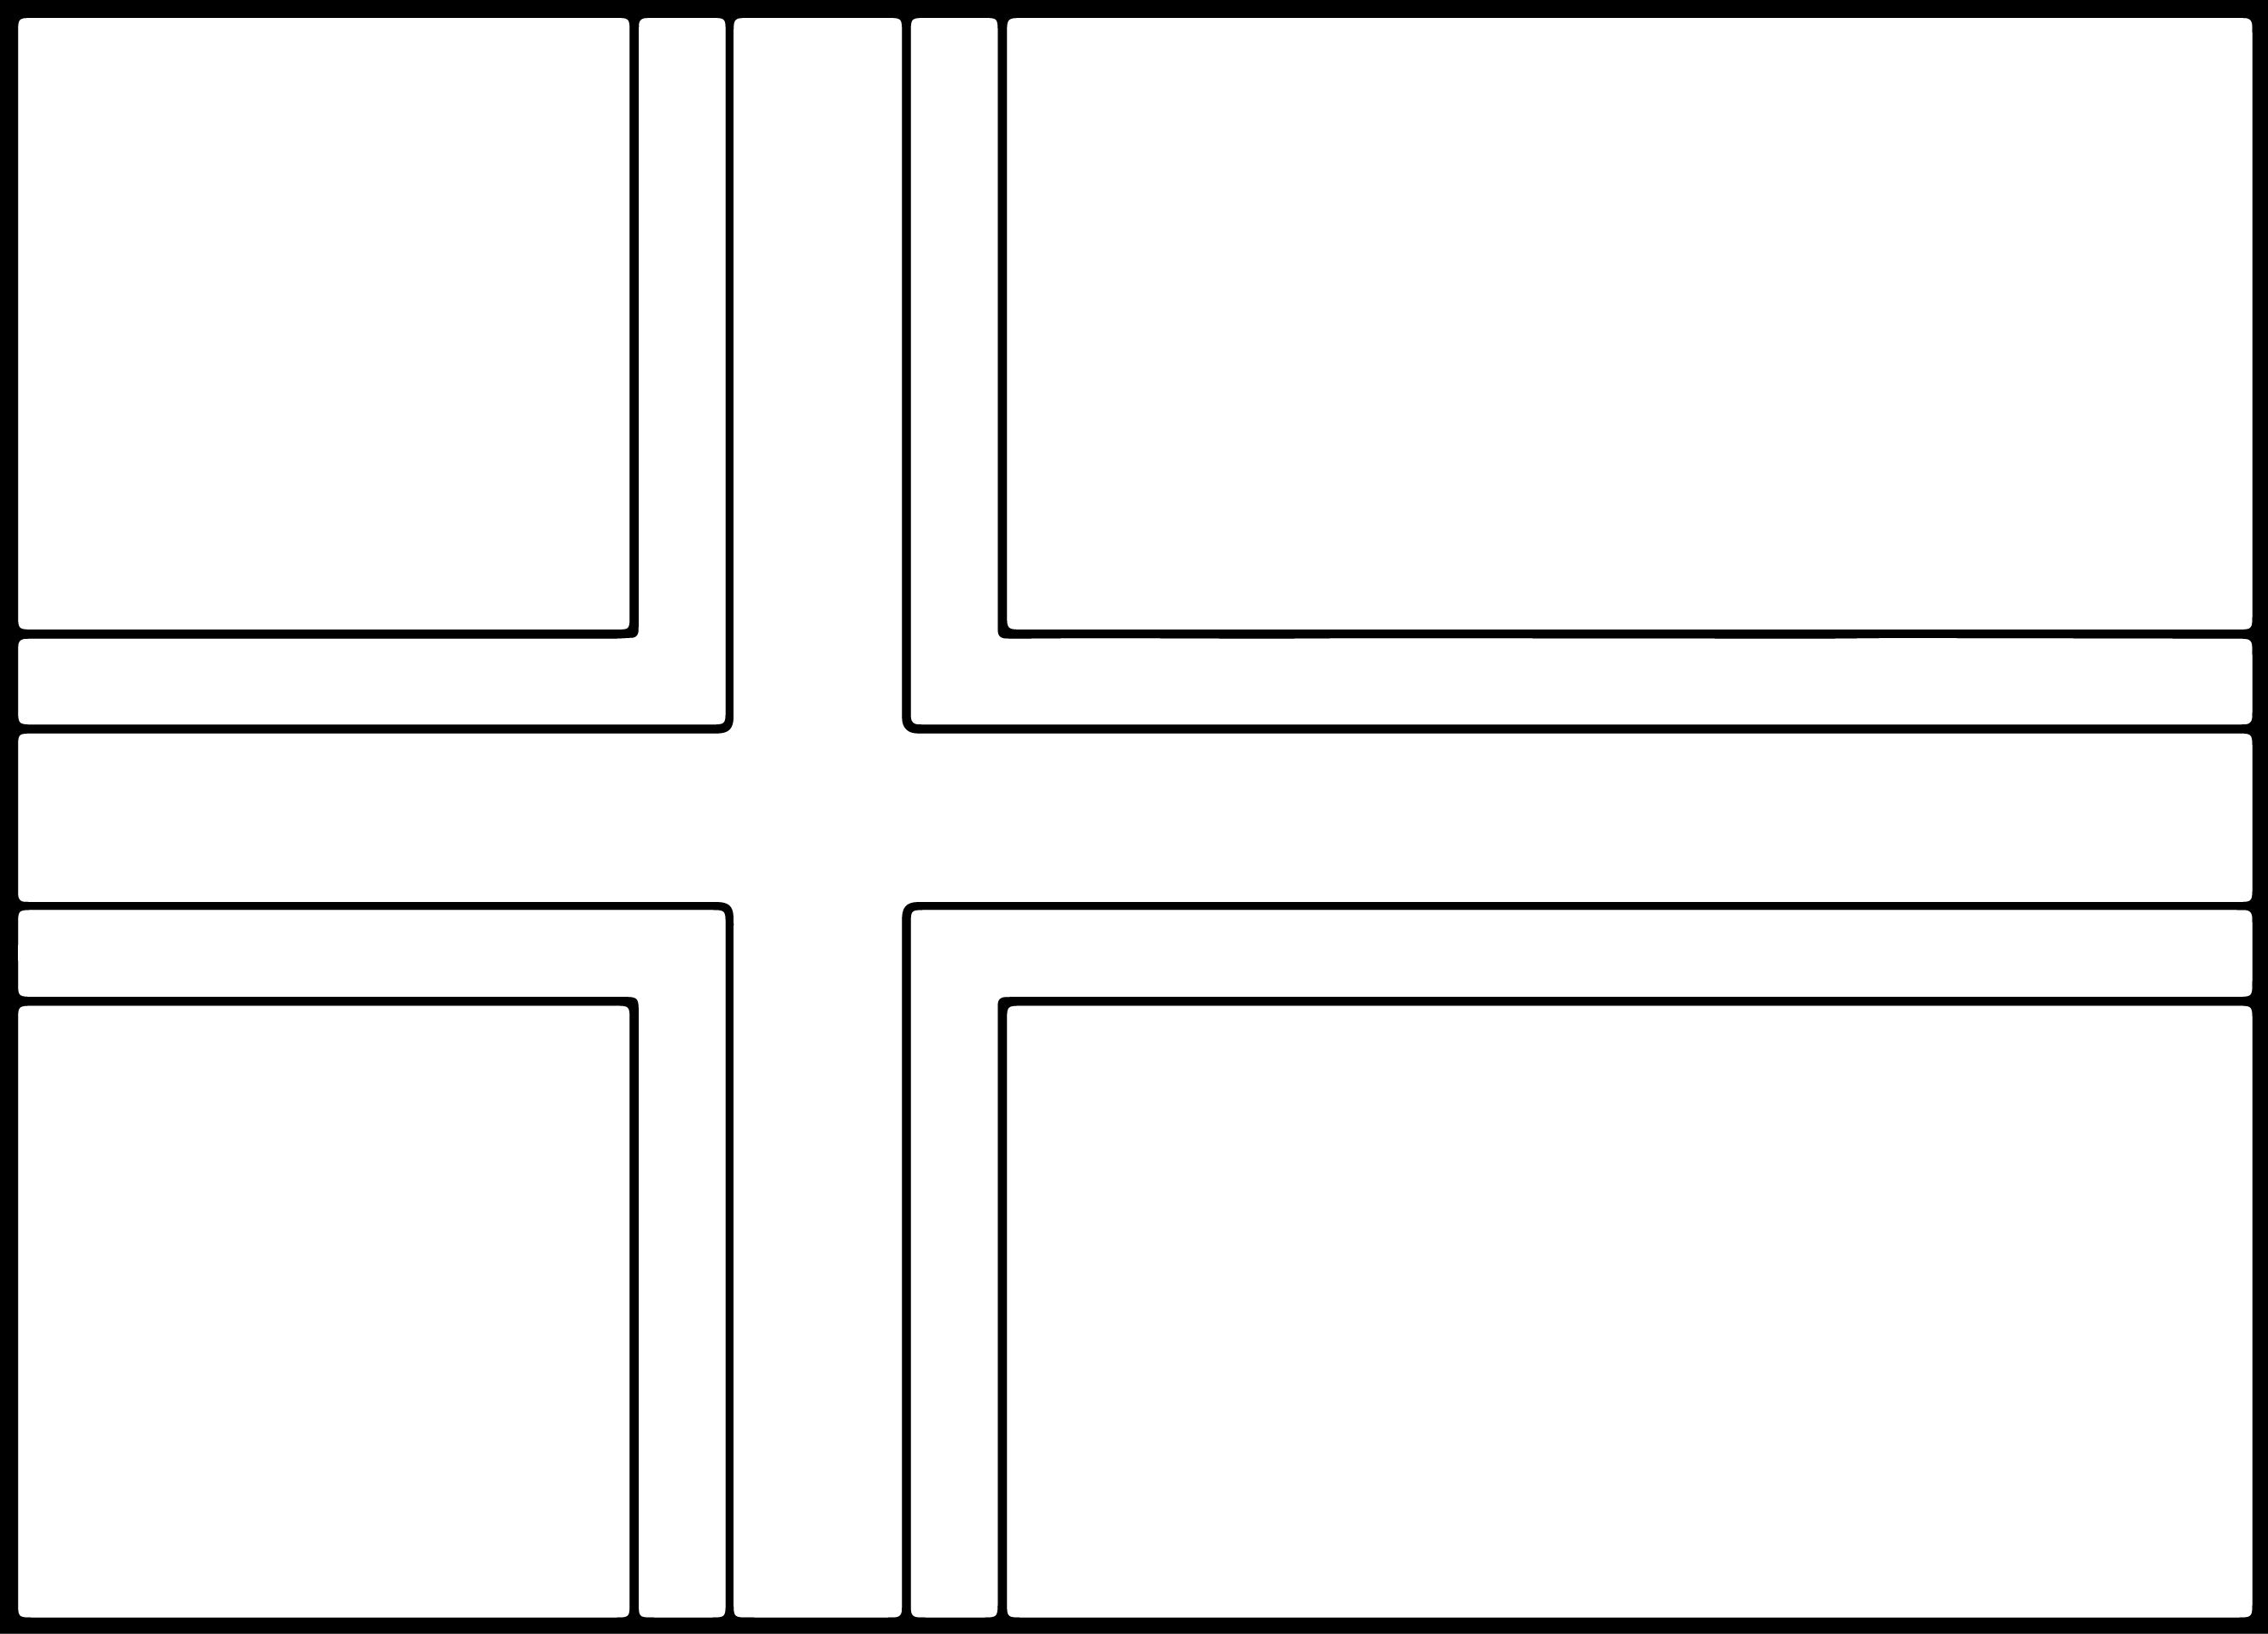 hollands national flag coloring pages - photo#28